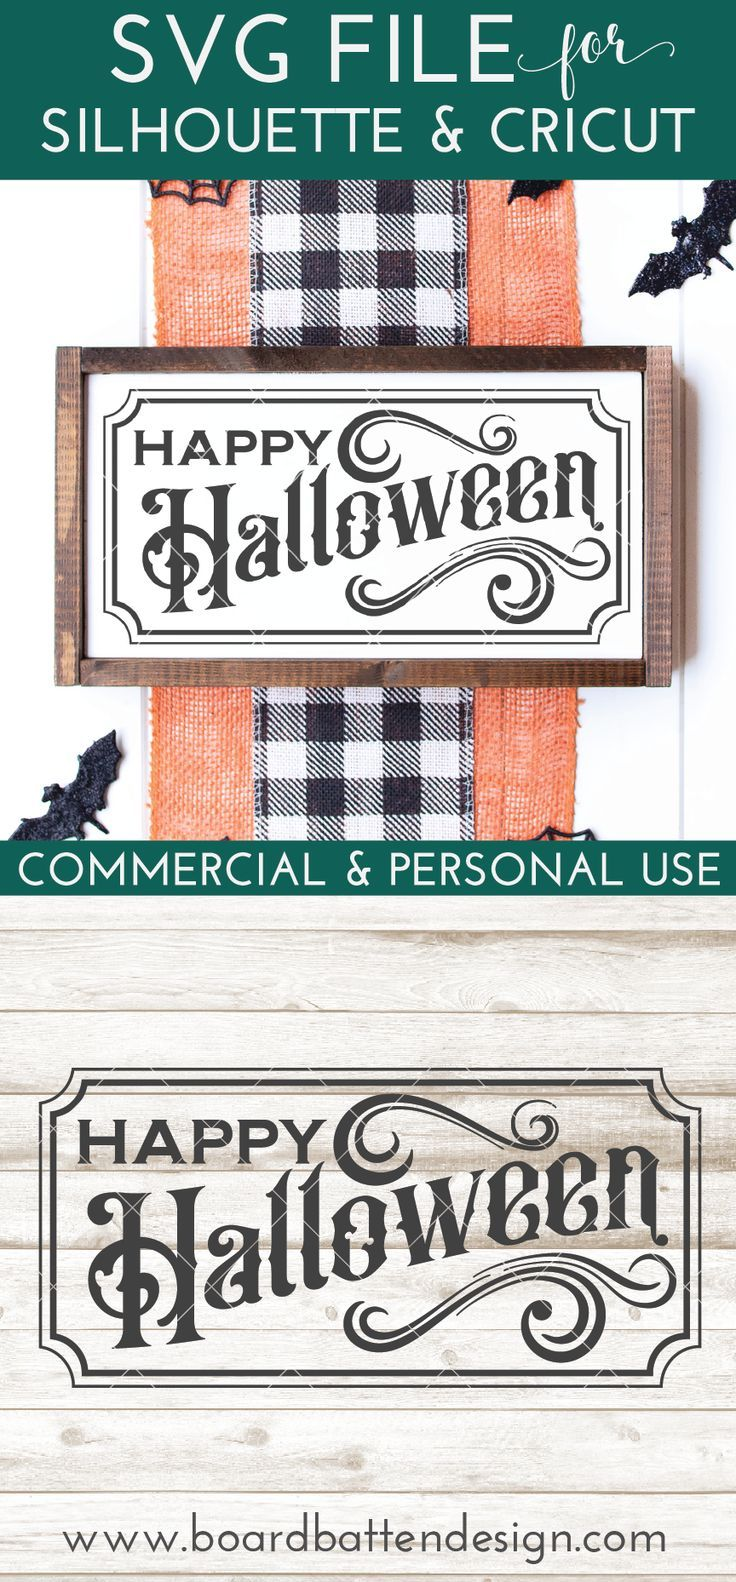 Vintage Happy Halloween SVG File 12x24 Size in 2020